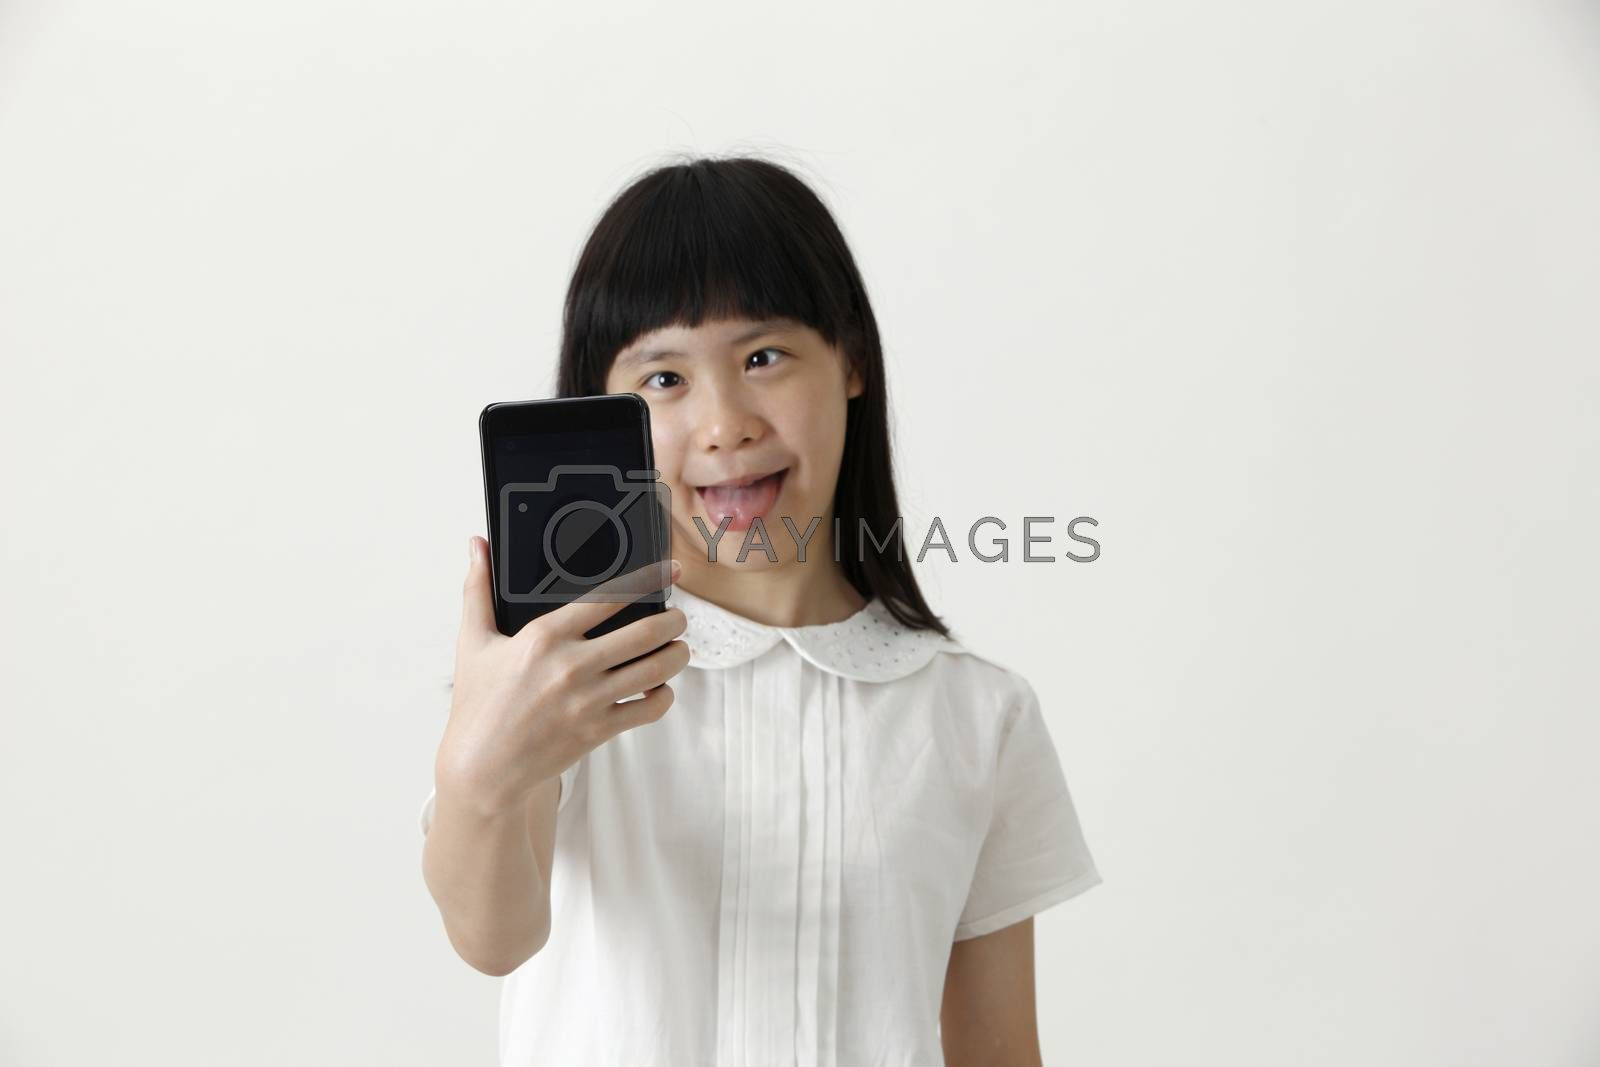 girl sefie making funny face